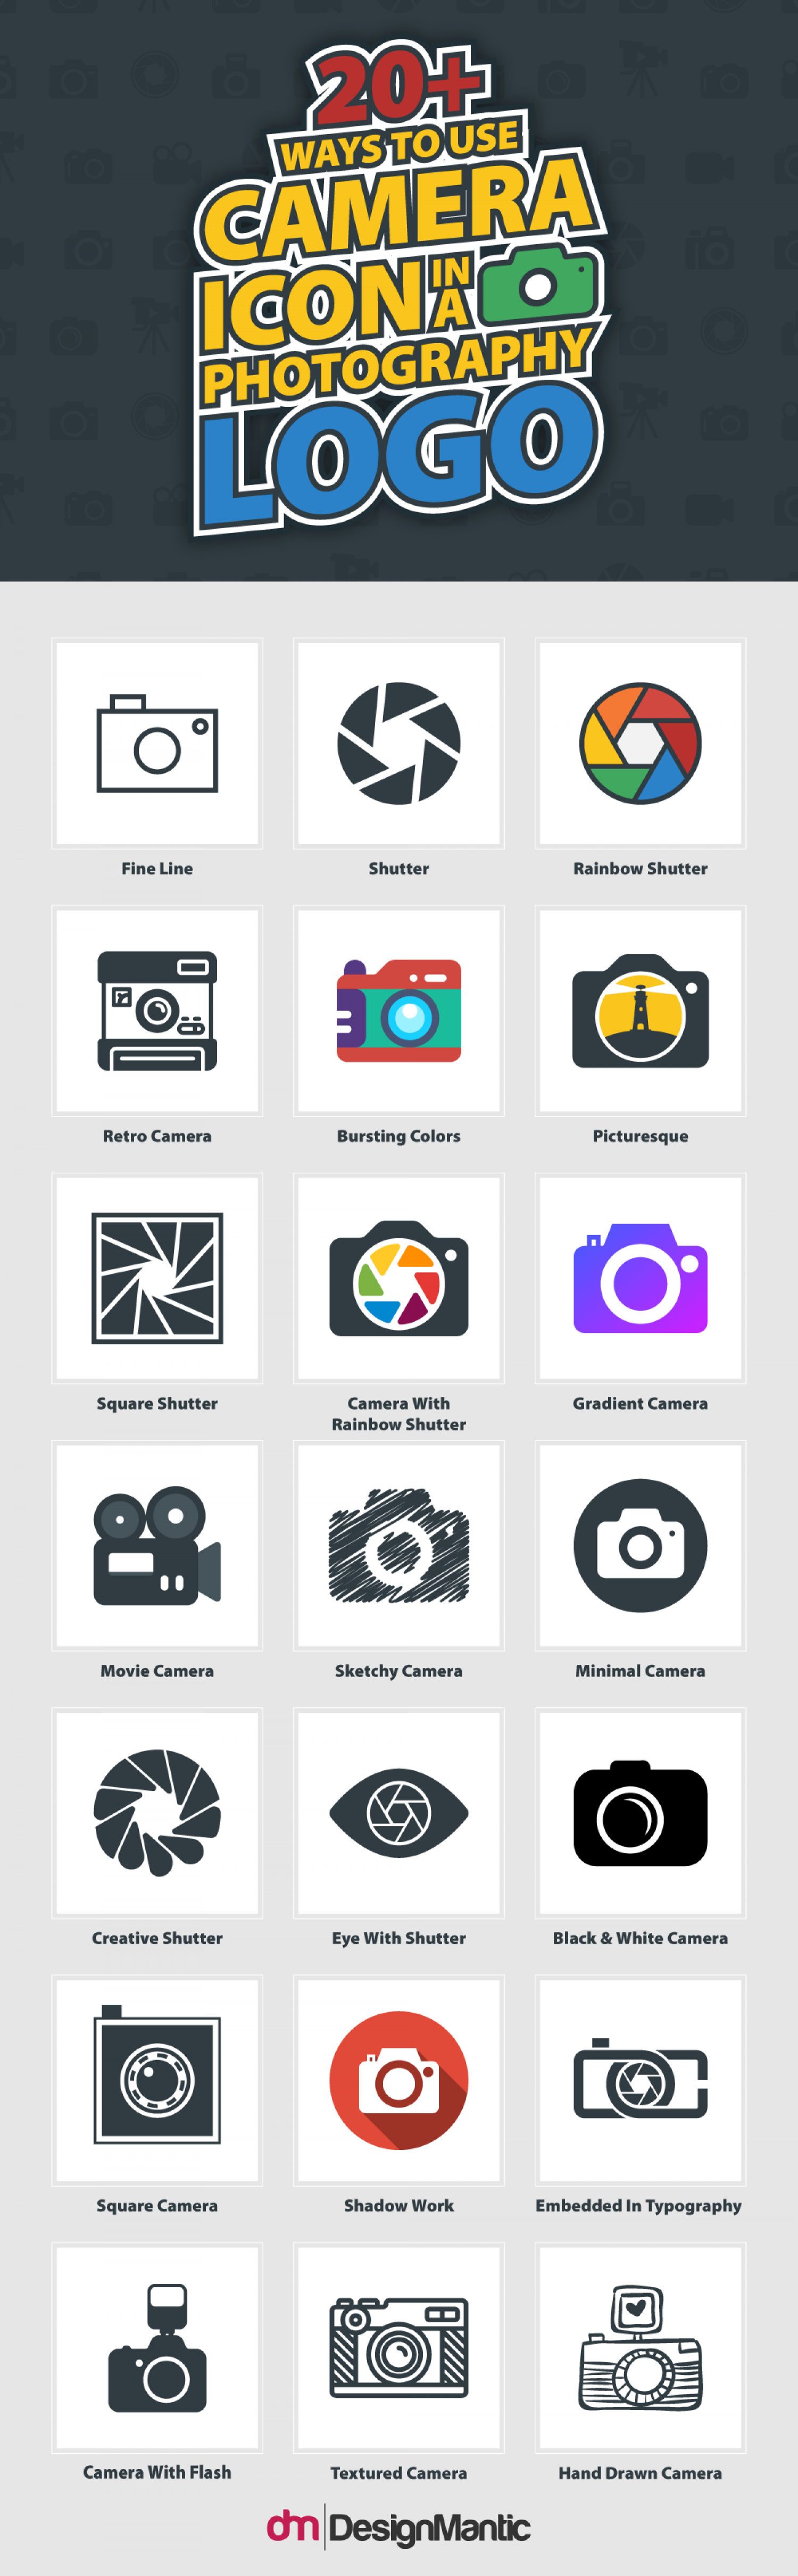 20+ Ways To Use Camera Icon In A Photography Logo! Infographic